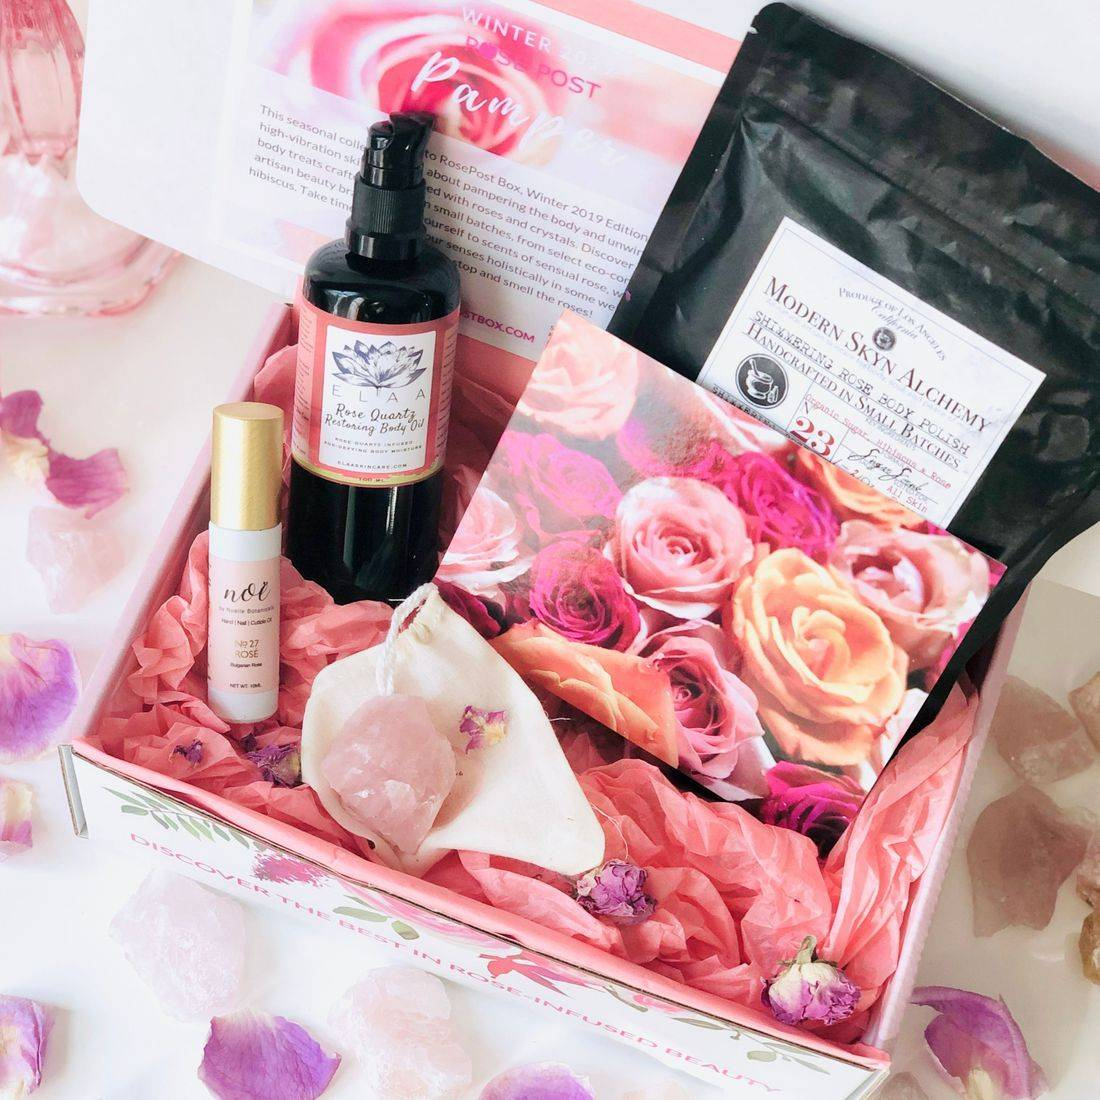 Best Rose-infused Skincare Valentine's Day, Clean Beauty Box, Aromatherapy Box, Bulgarian Rose Oil, Rose Oil, RosePost Fall Box, RosePost Box, Green Beauty Subscription, Rose Beauty Box, Green Beauty Box, Valentines Day Gift, Best Rose Skincare